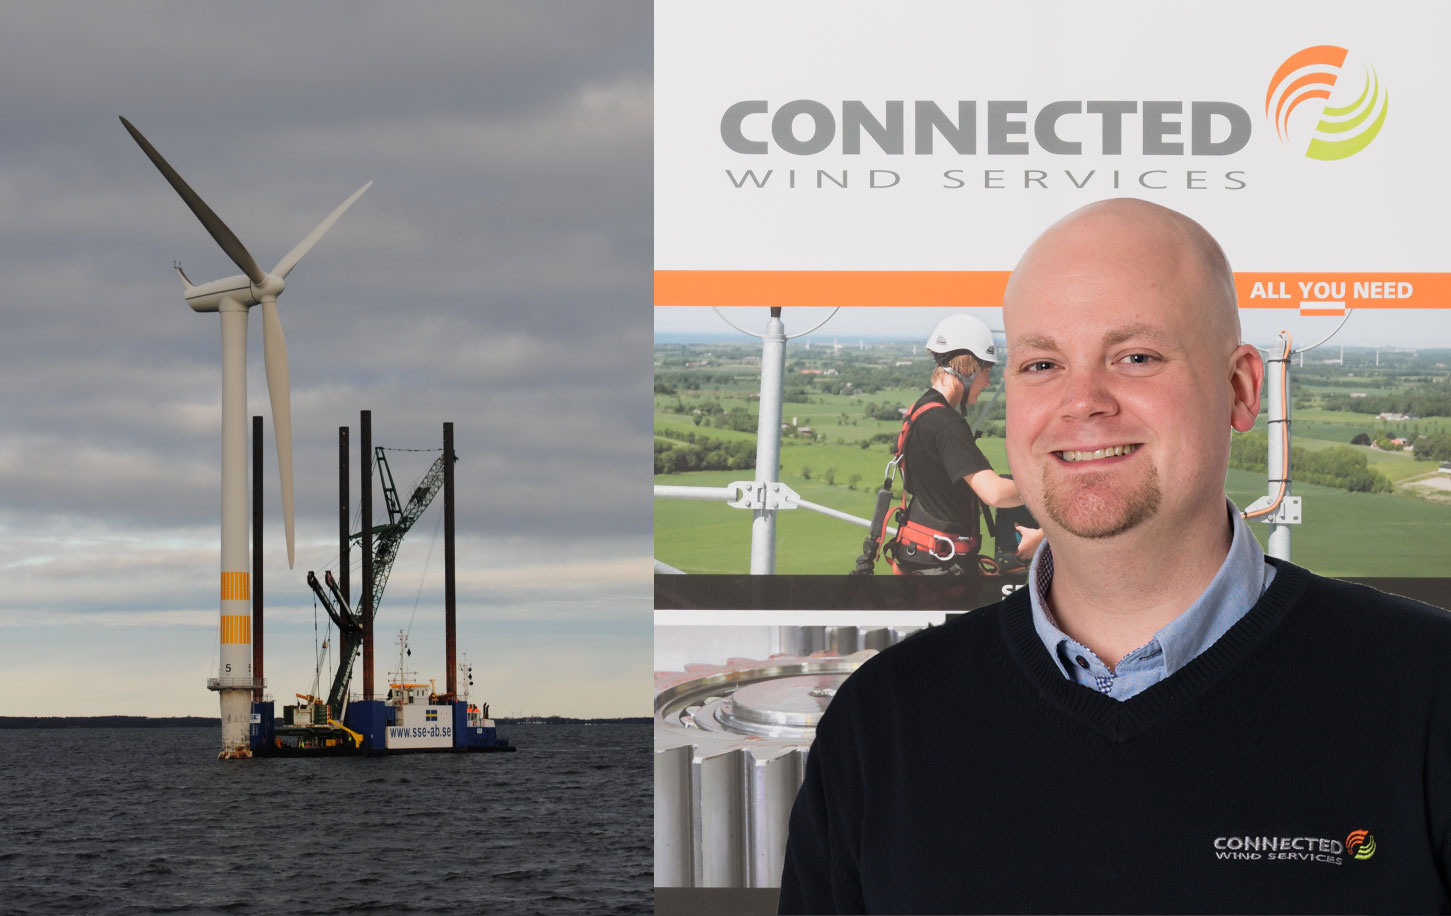 1. Project manager Mikkel Kærgaard from Connected Wind Services is pleased that the dismantling of Yttre Stengrund has proven that the Danish company both has the strength and expertise to solve very complex service projects, also when it involves offshore wind turbines. 2. Specialized wind turbine technicians from Connected Wind Services were put at work, when the Swedish wind farm Yttre Stengrund in Kalmar Sound was decommissioned as the first offshore wind farm in the world.